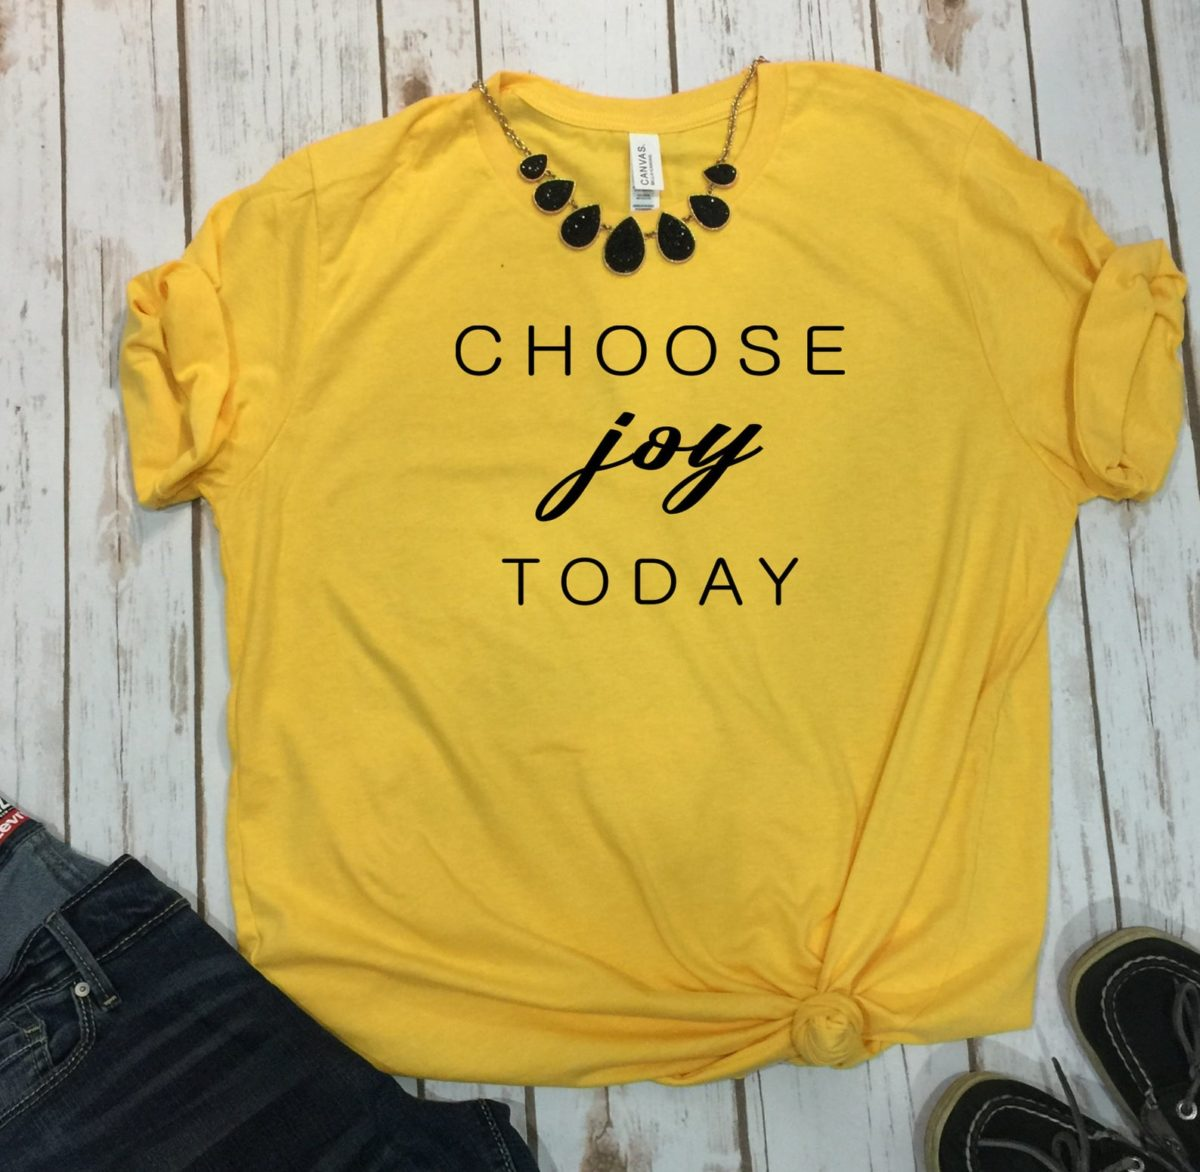 26 awesome etsy t-shirts that send a positive message and make great gifts | parenting questions | mamas uncut il 1588xn.1357098112 aezl